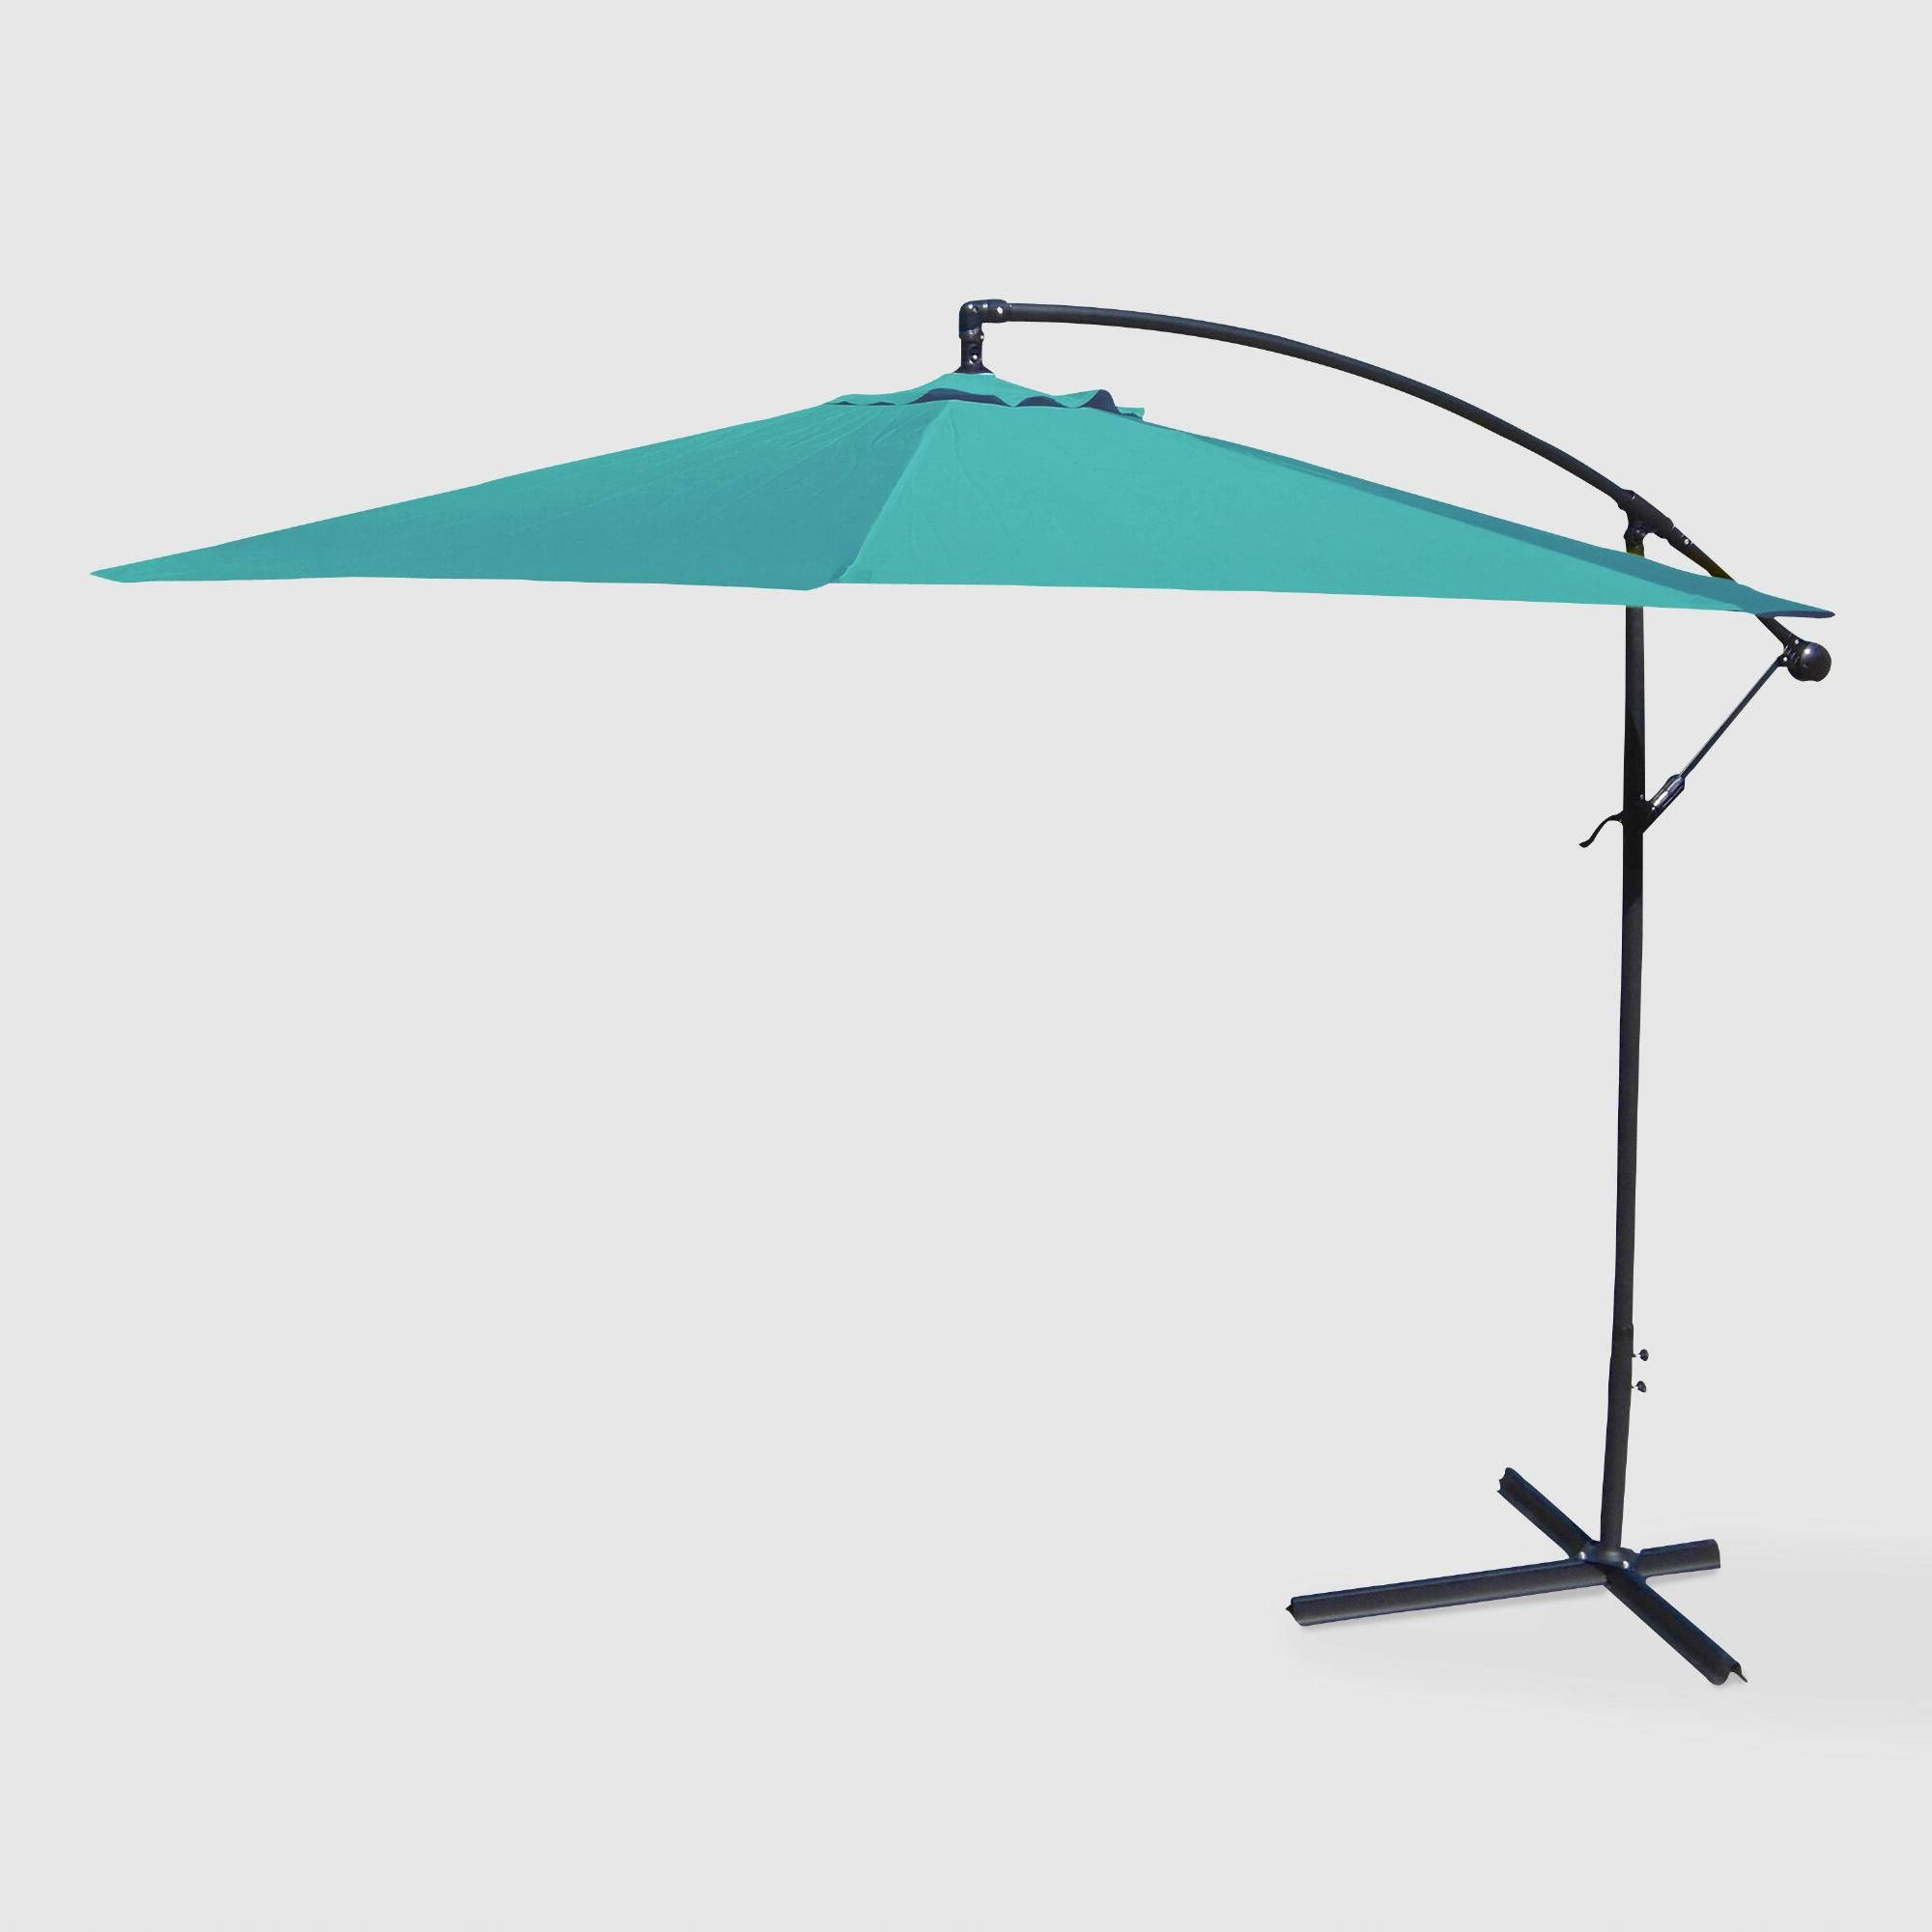 Lora Market Umbrellas In Most Recent Aruba Turquoise Cantilever Outdoor Patio Umbrella: Blue – Fabric (View 3 of 20)